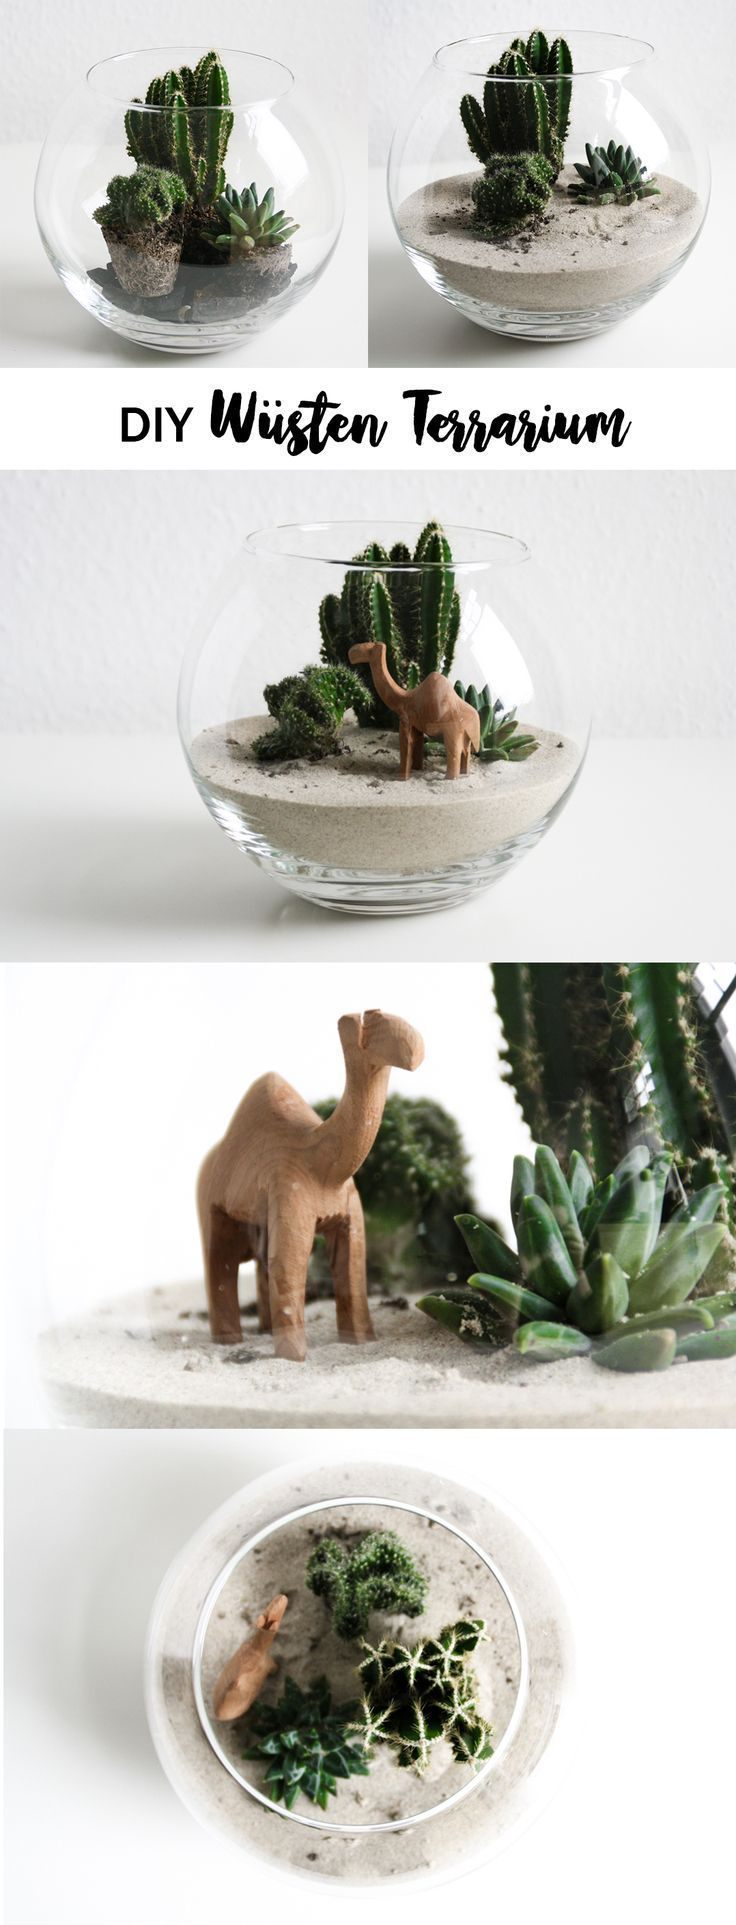 DIY small desert in the glass